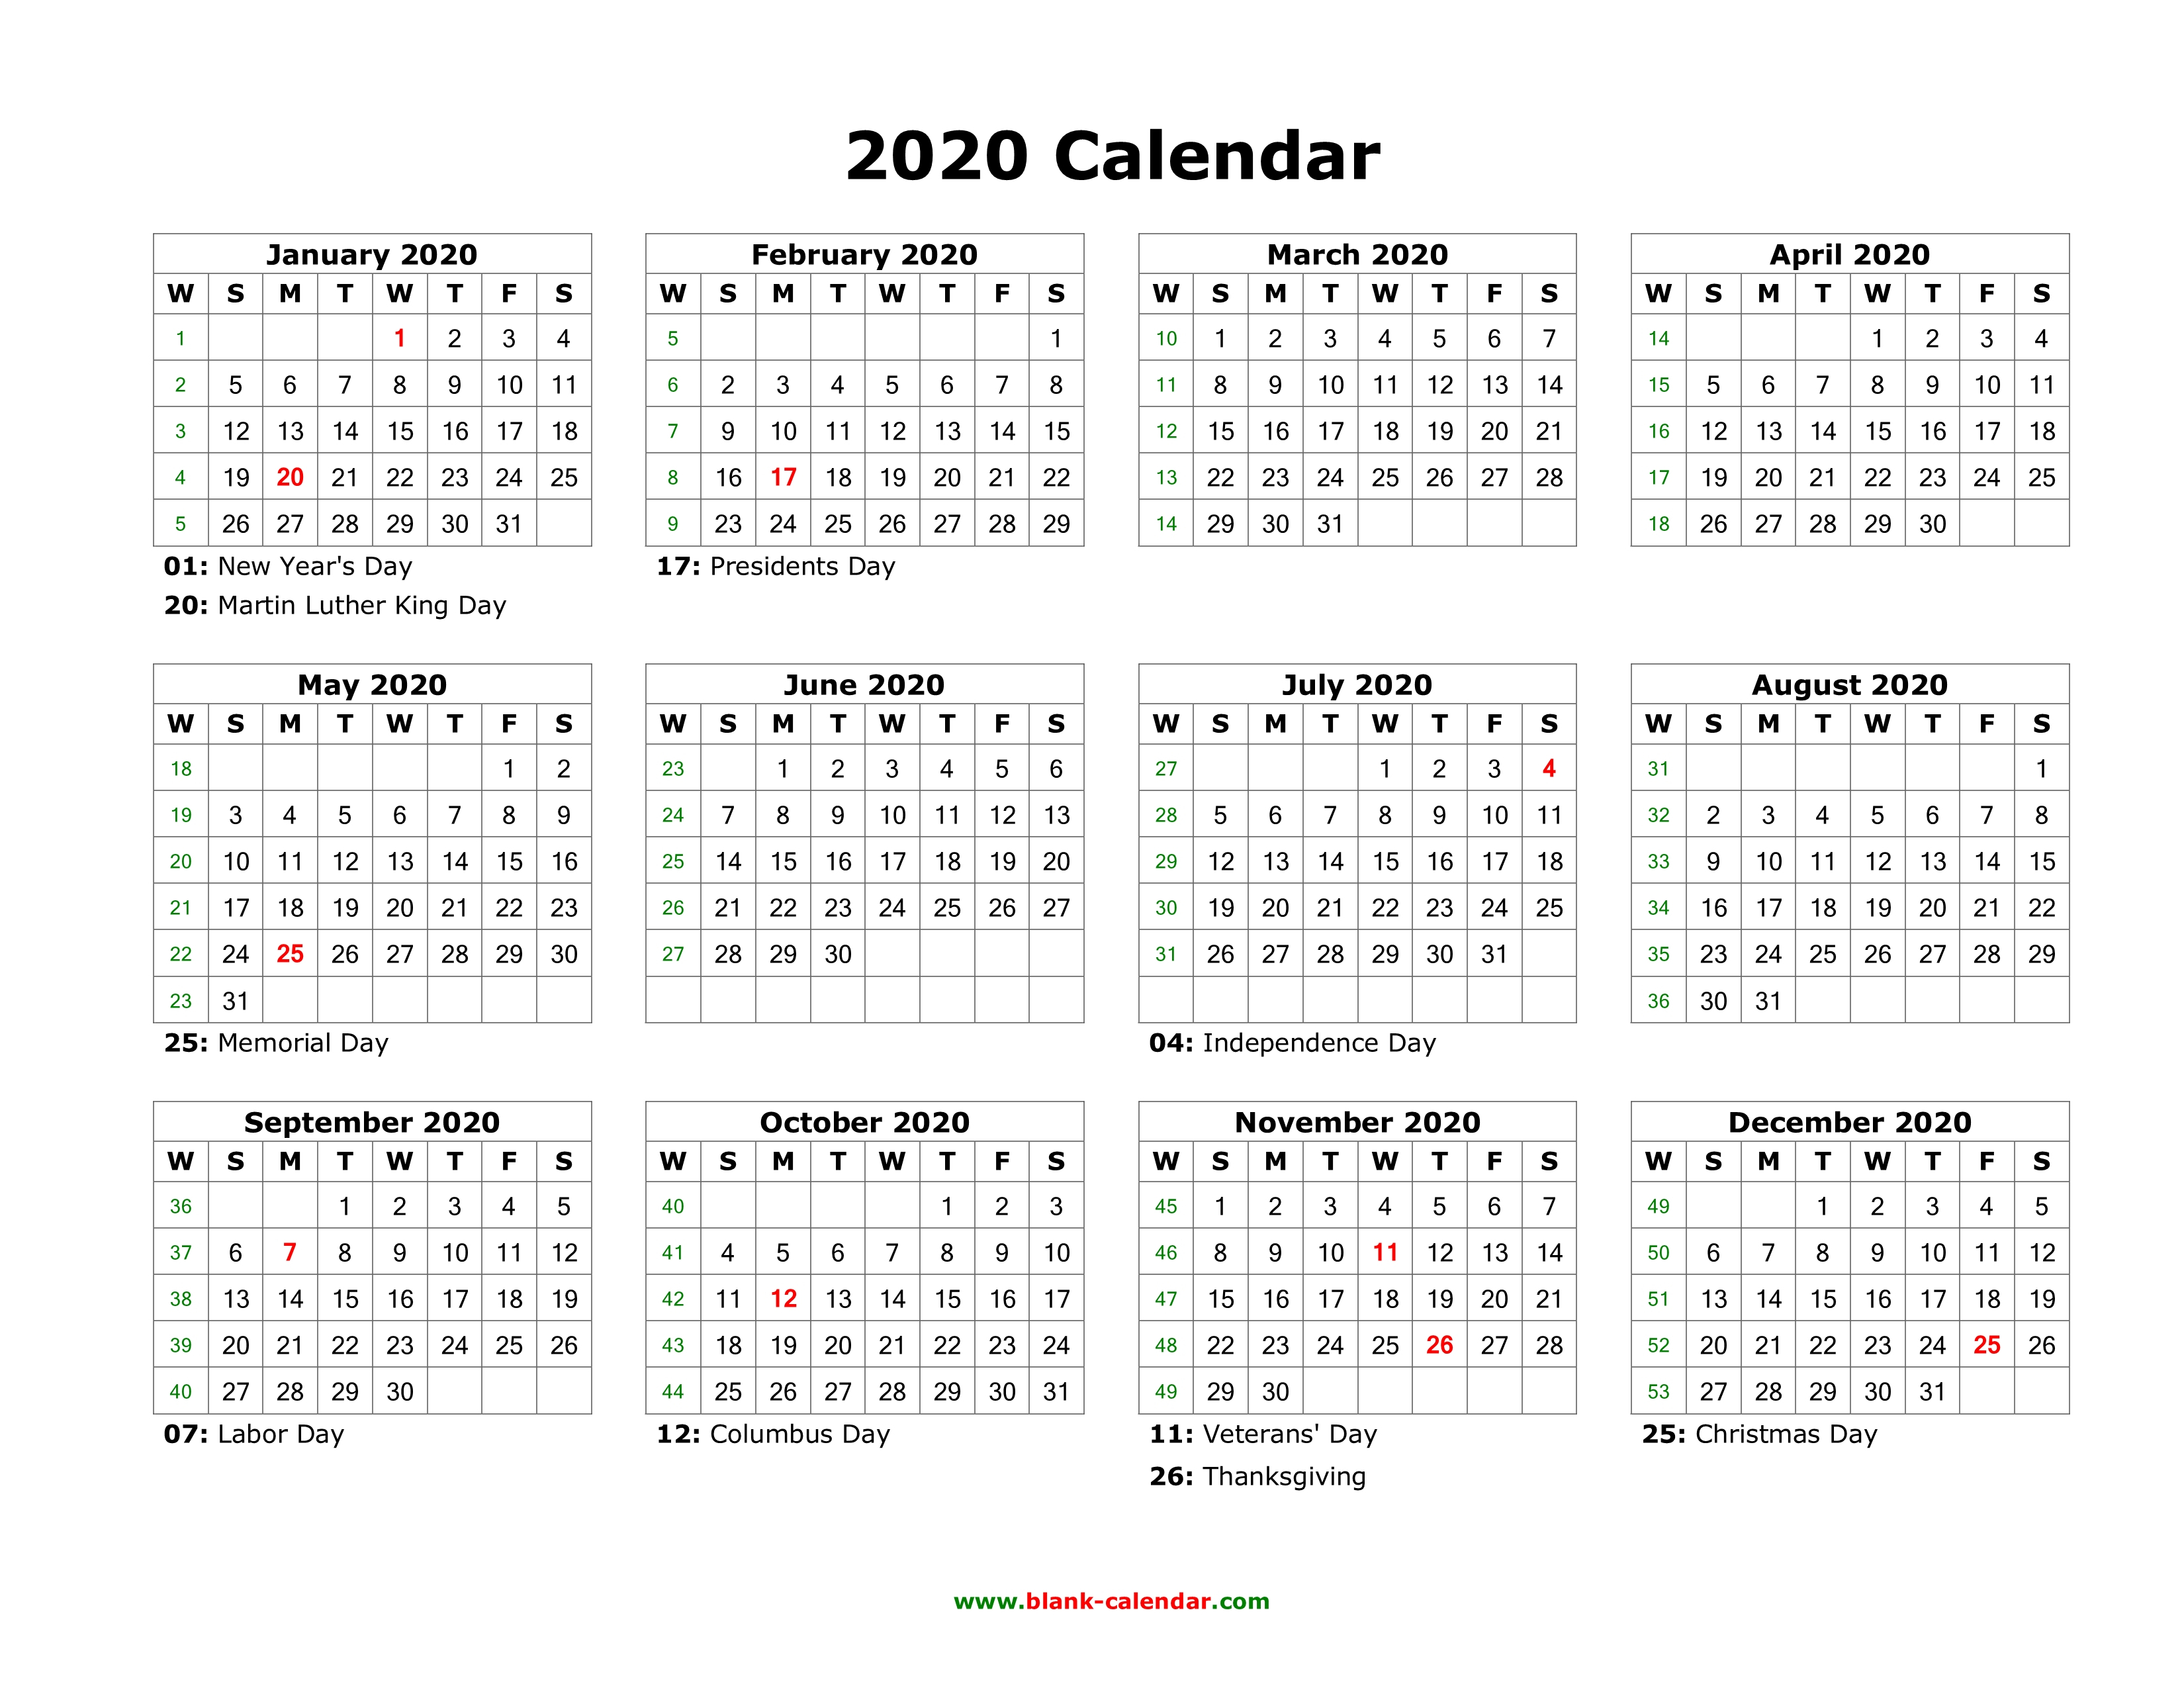 Download Blank Calendar 2020 With Us Holidays (12 Months On One Page pertaining to Monday To Sunday Printable 2020 Calendar